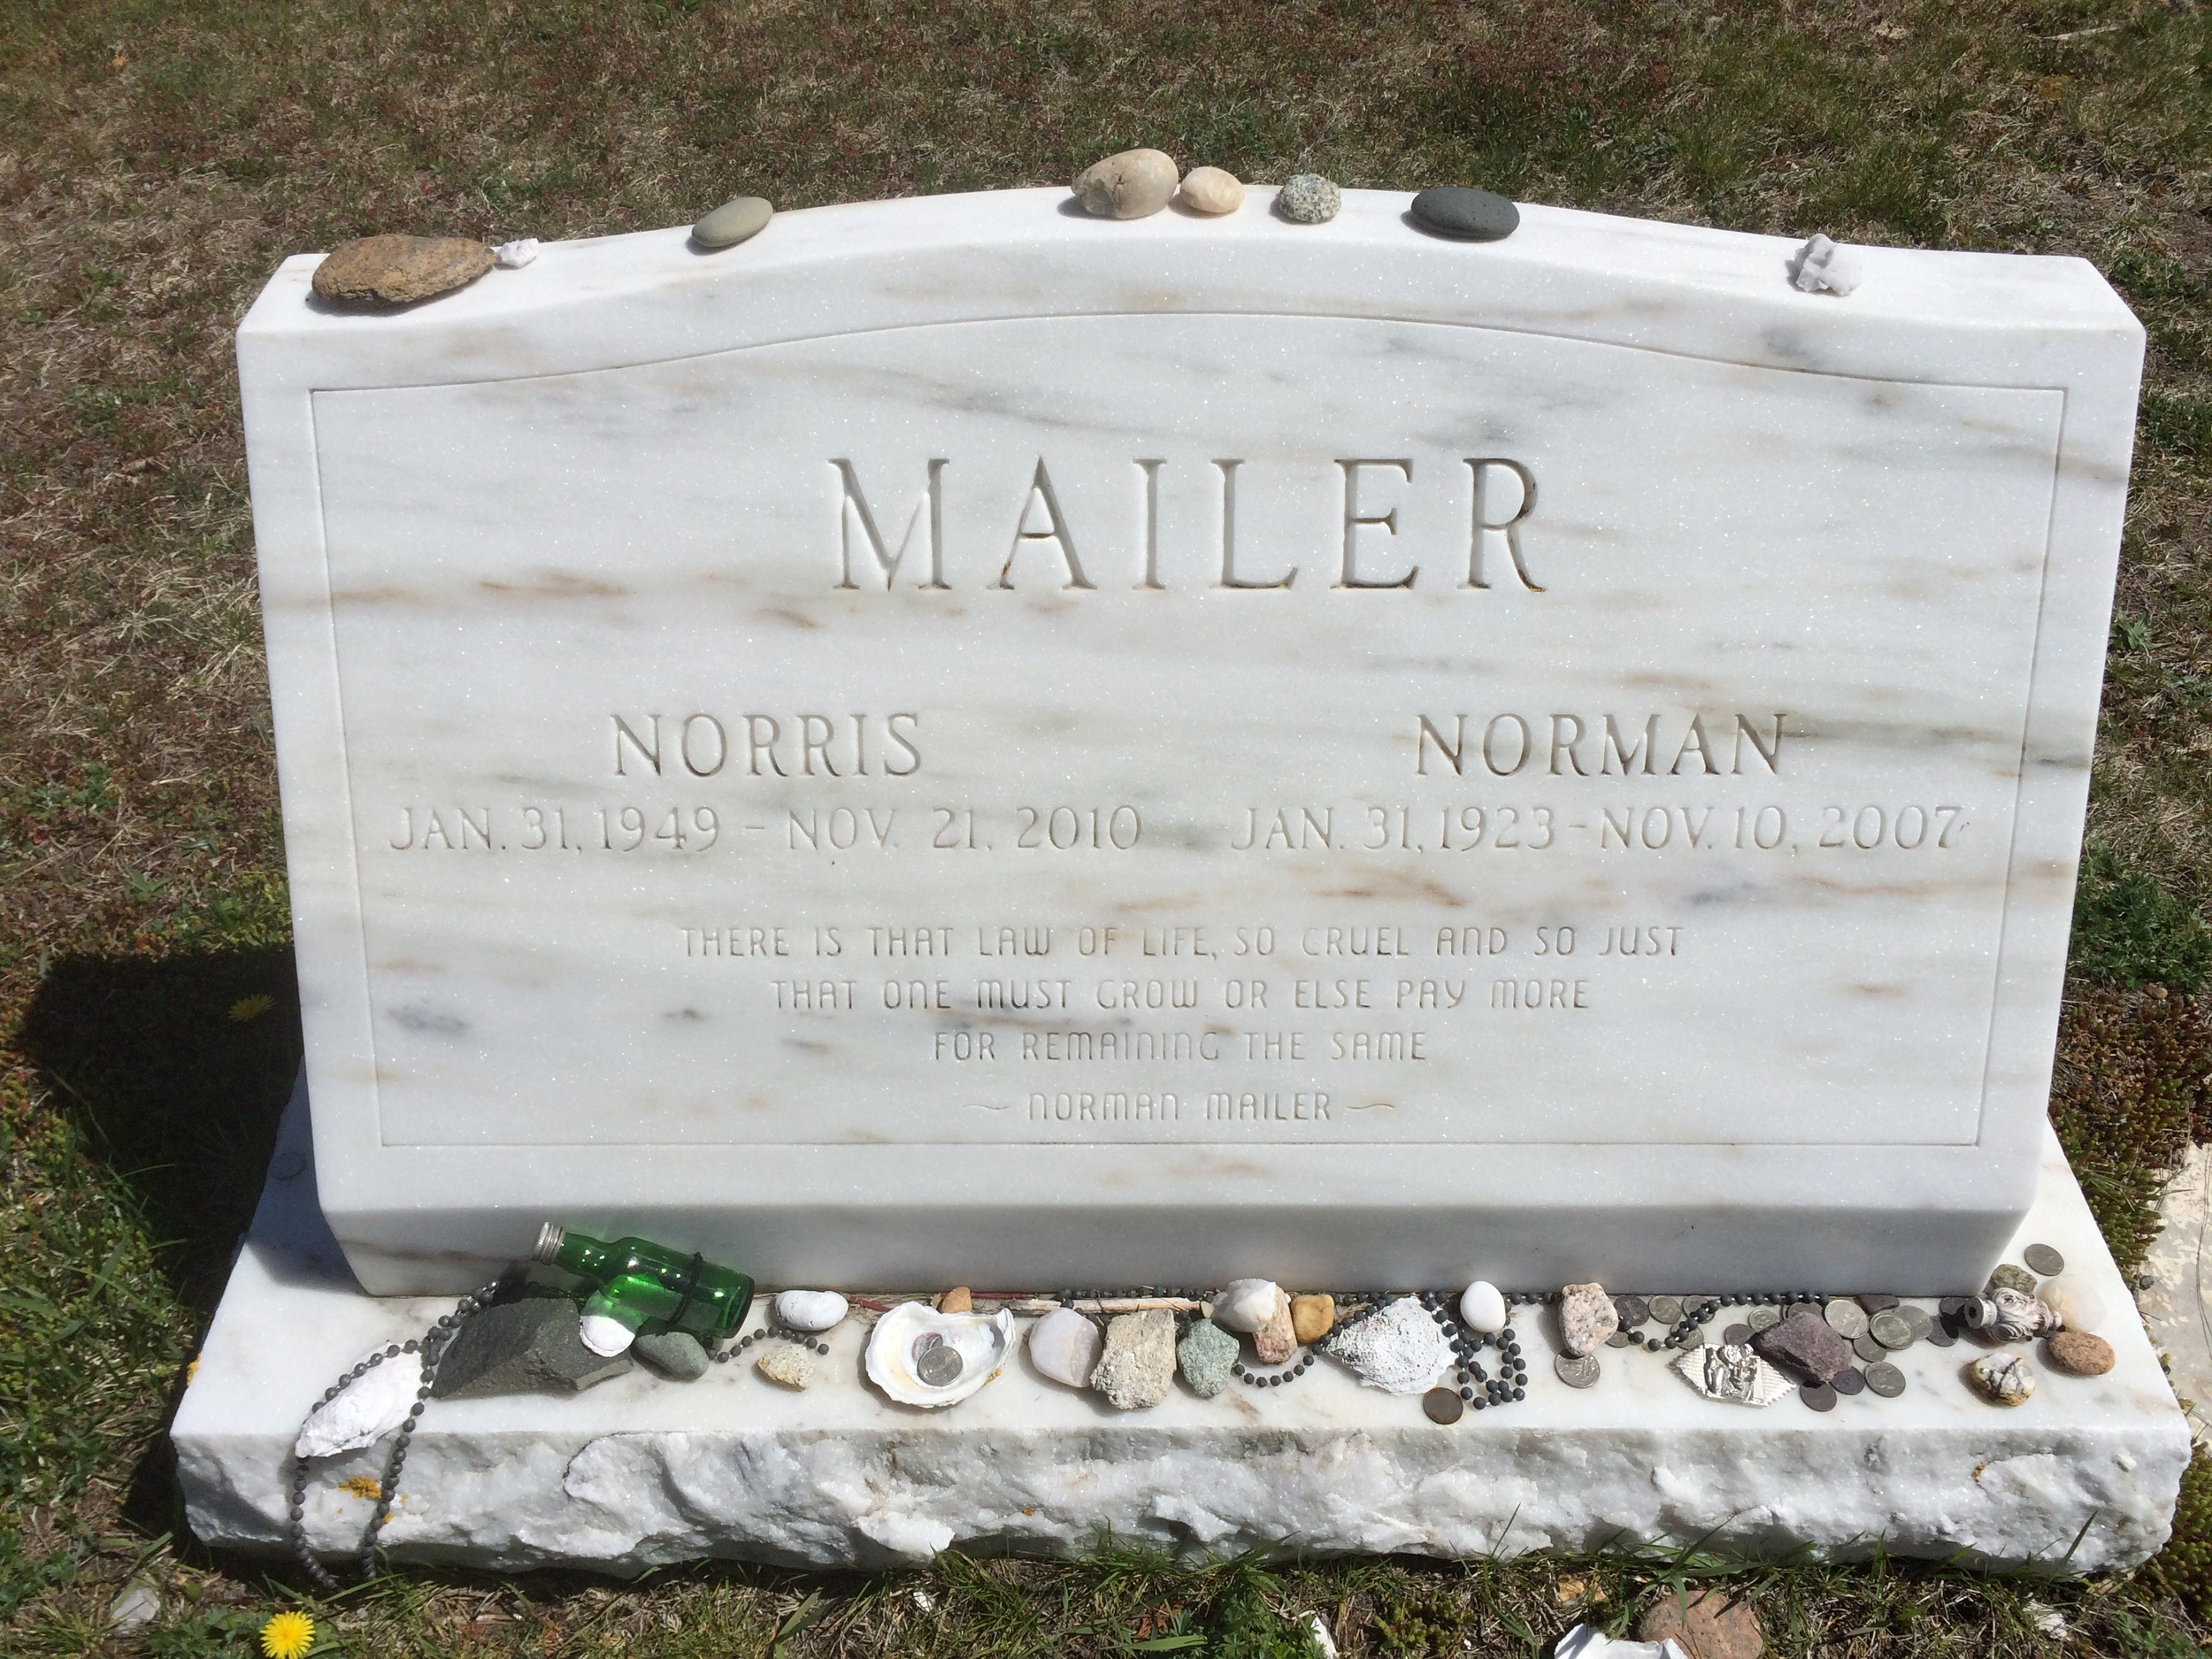 Mailer's gravestone in Provincetown, MA. Photo © Estate of Fred W. McDarrah